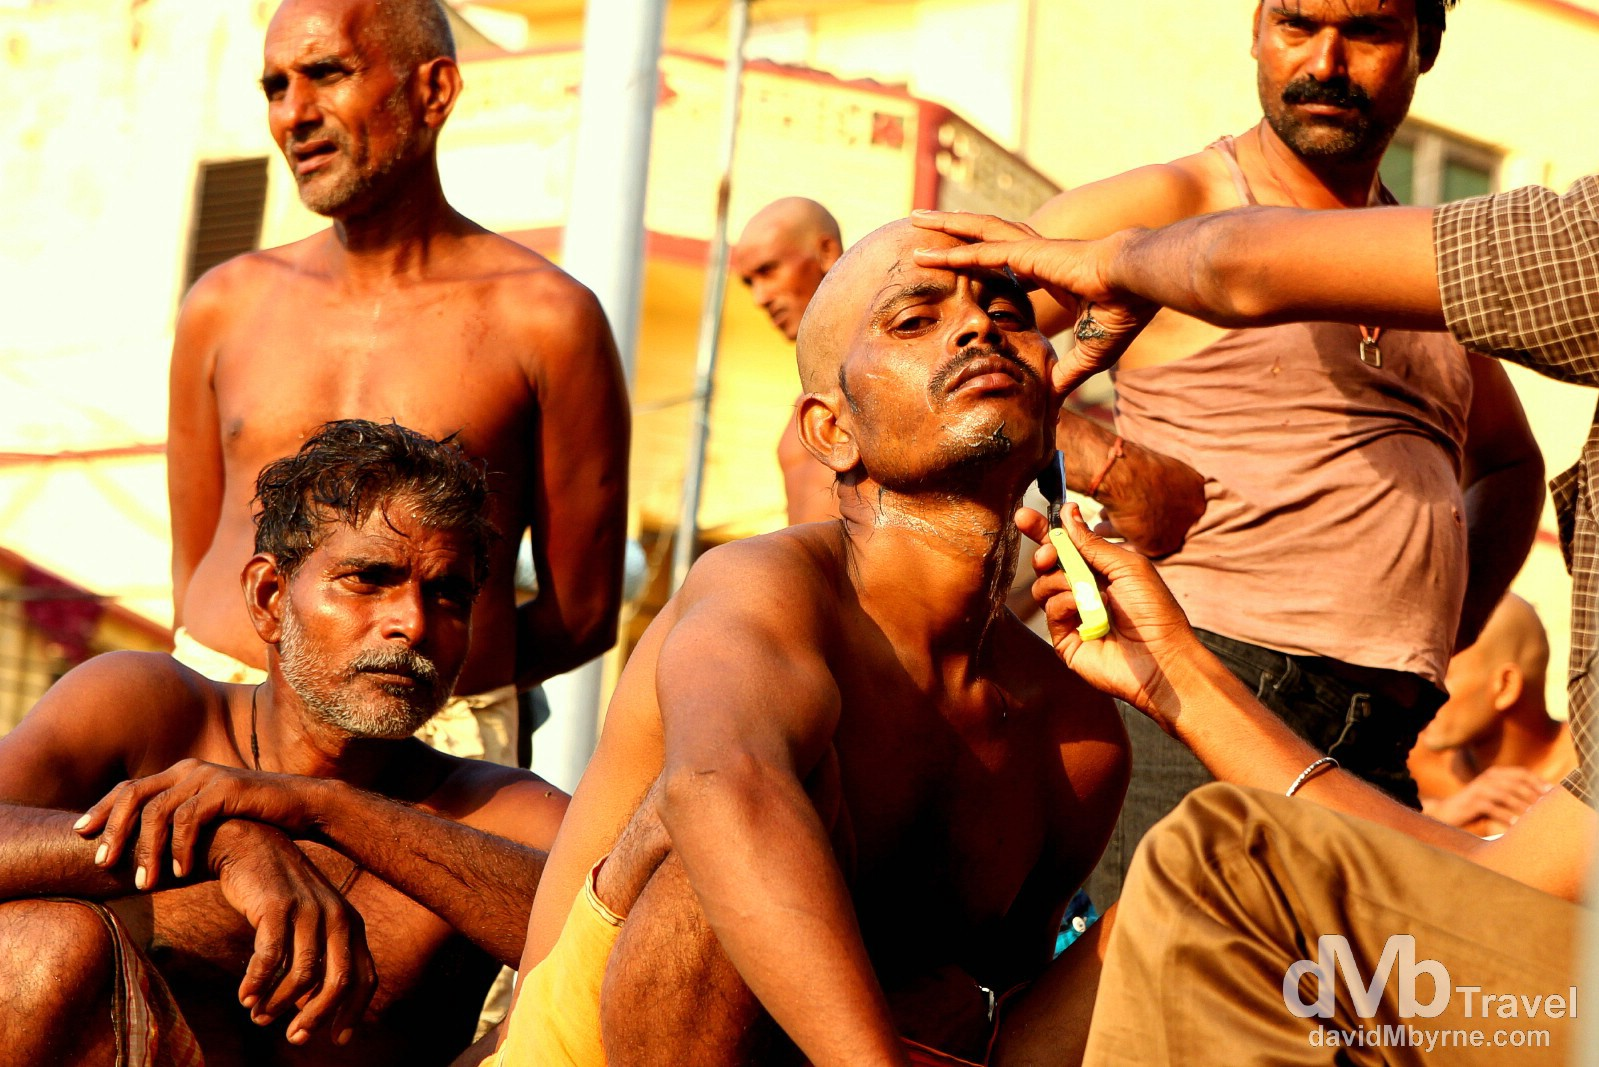 Getting a shave on the steps of a ghat by the Ganges River in Varanasi, Uttar Pradesh, India. October 13th 2012.